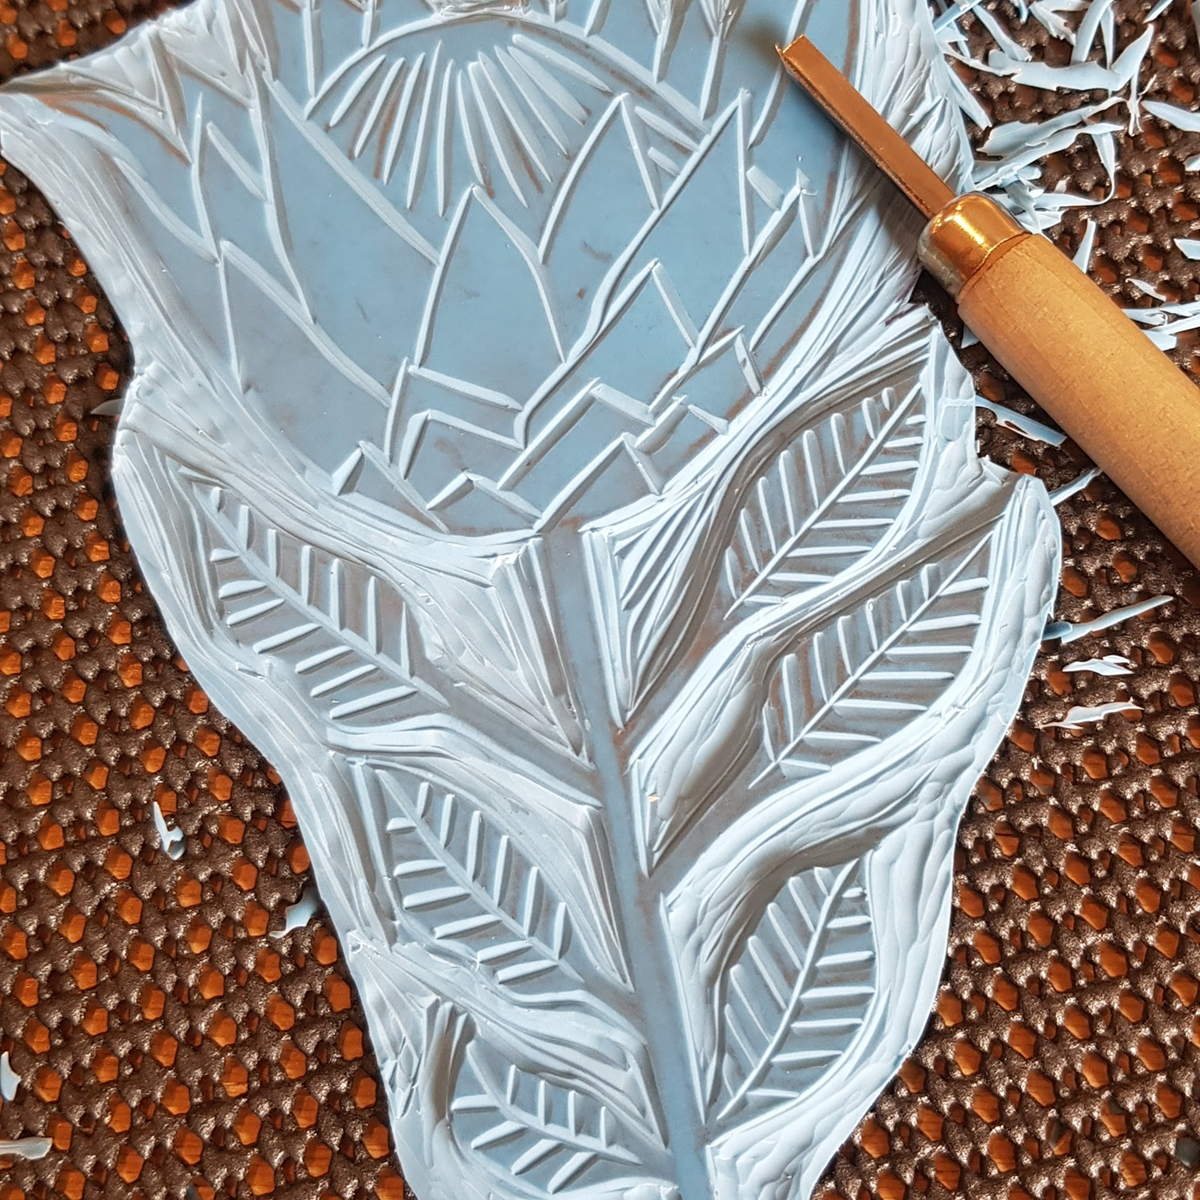 Lino printing block with a protea flower